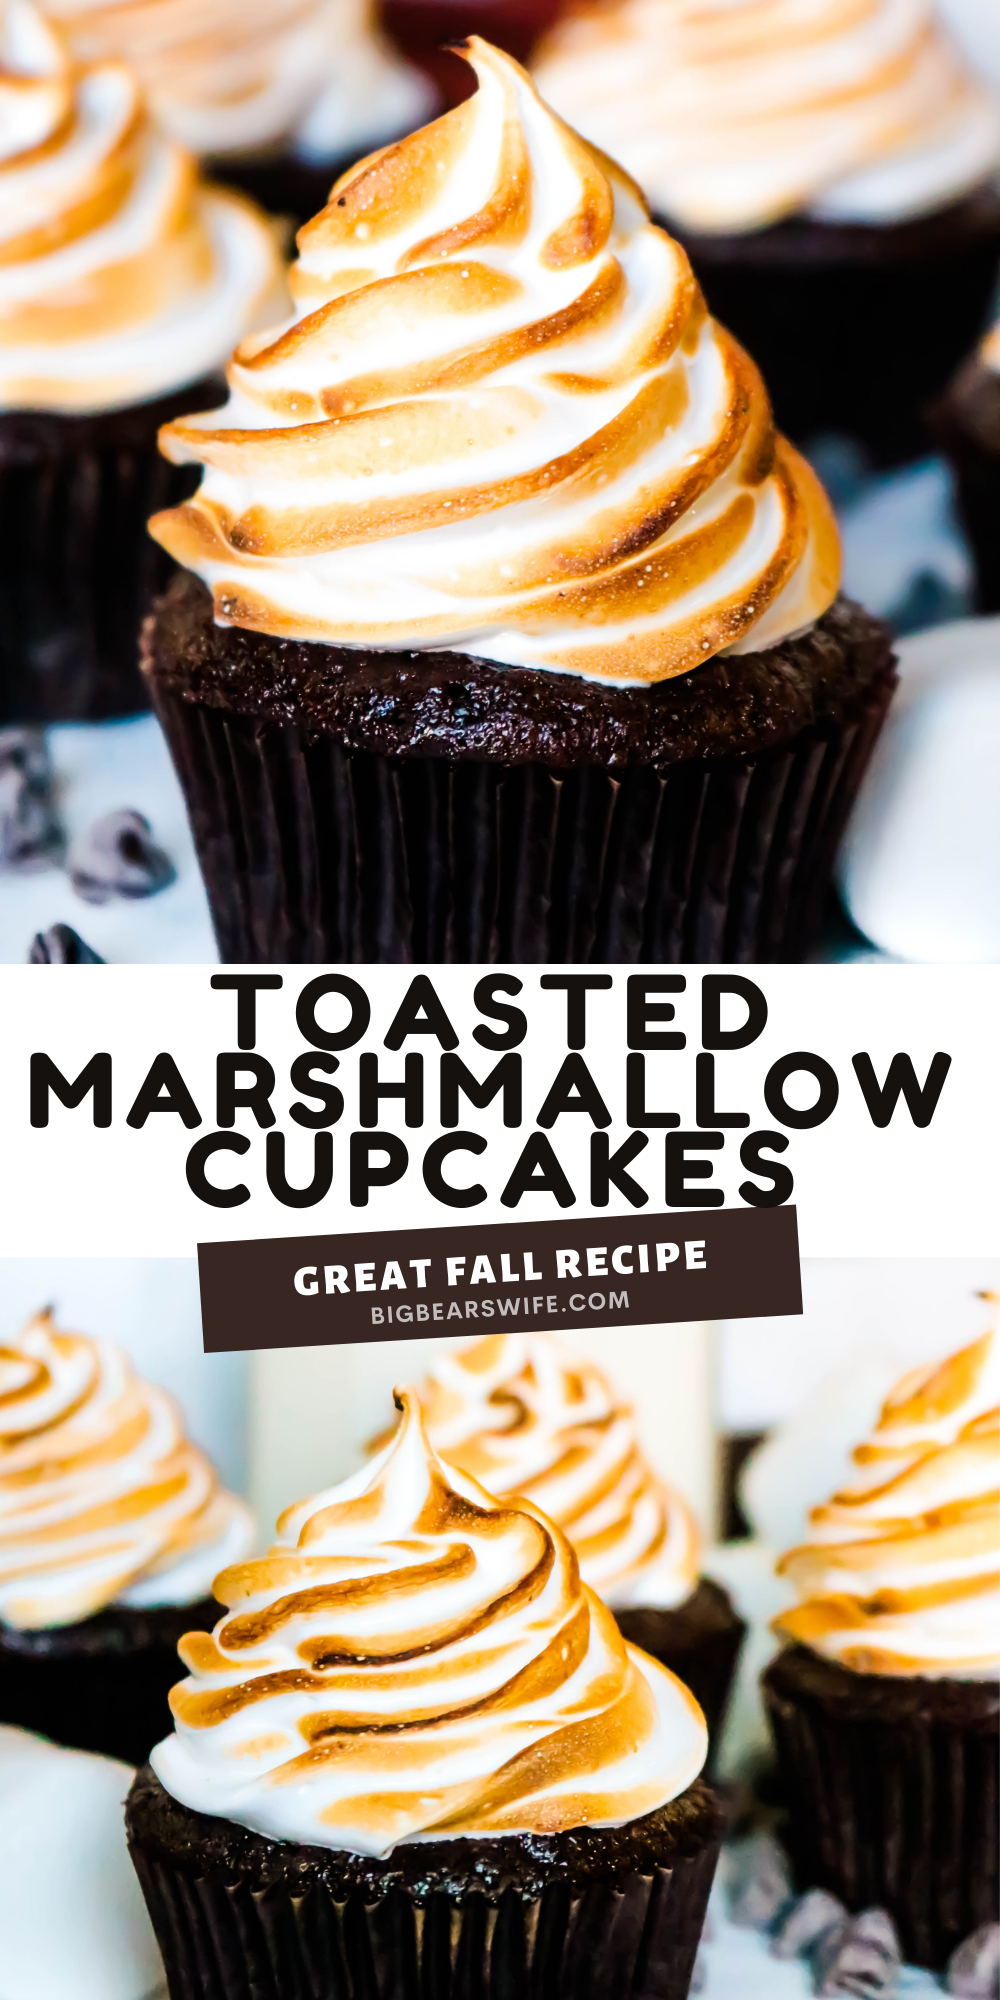 Toasted Marshmallow Cupcakes bring the taste of campfire marshmallows and homemade chocolate cupcakes together in this tasty and easy dessert recipes.  via @bigbearswife